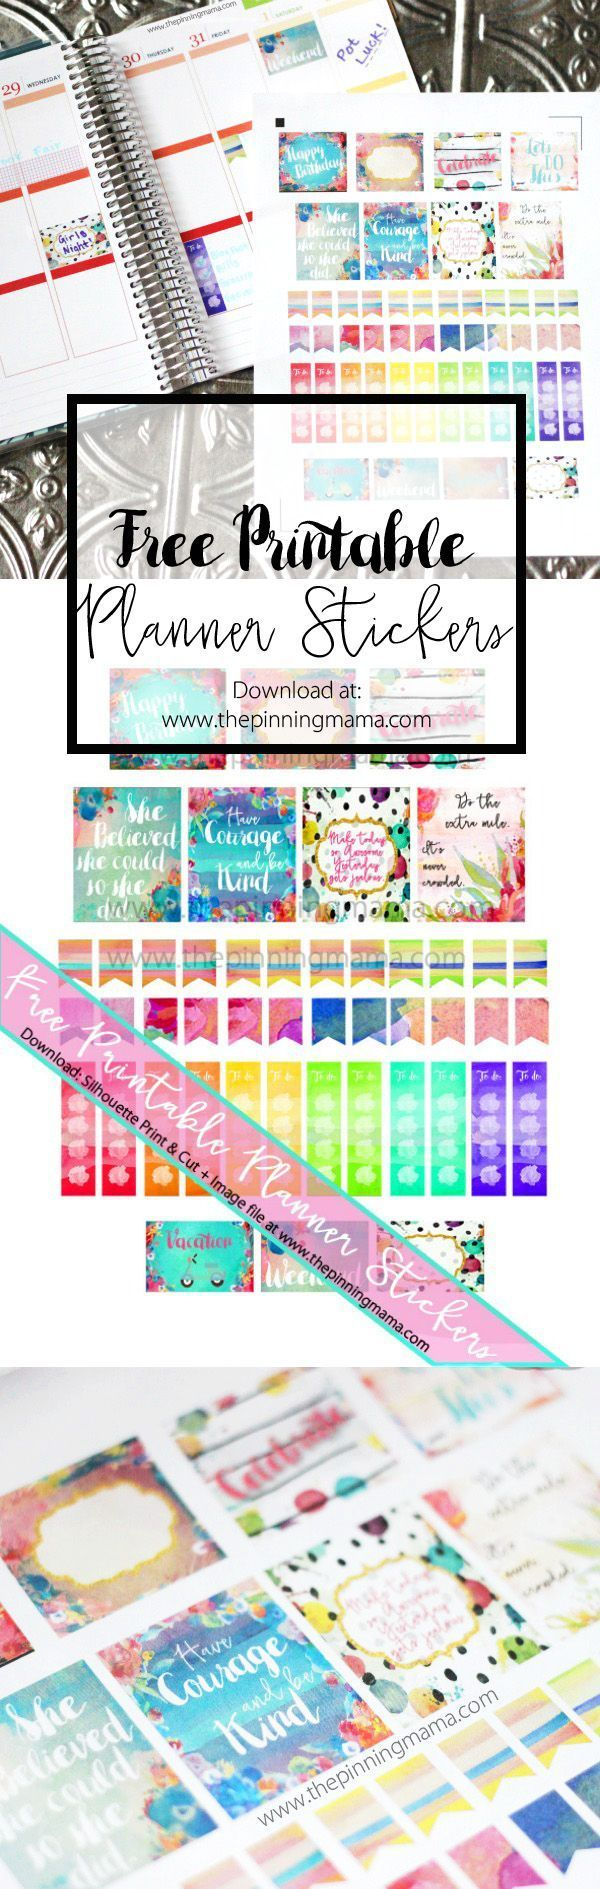 Free Printable Planner Stickers                                                                                                                                                                                 More